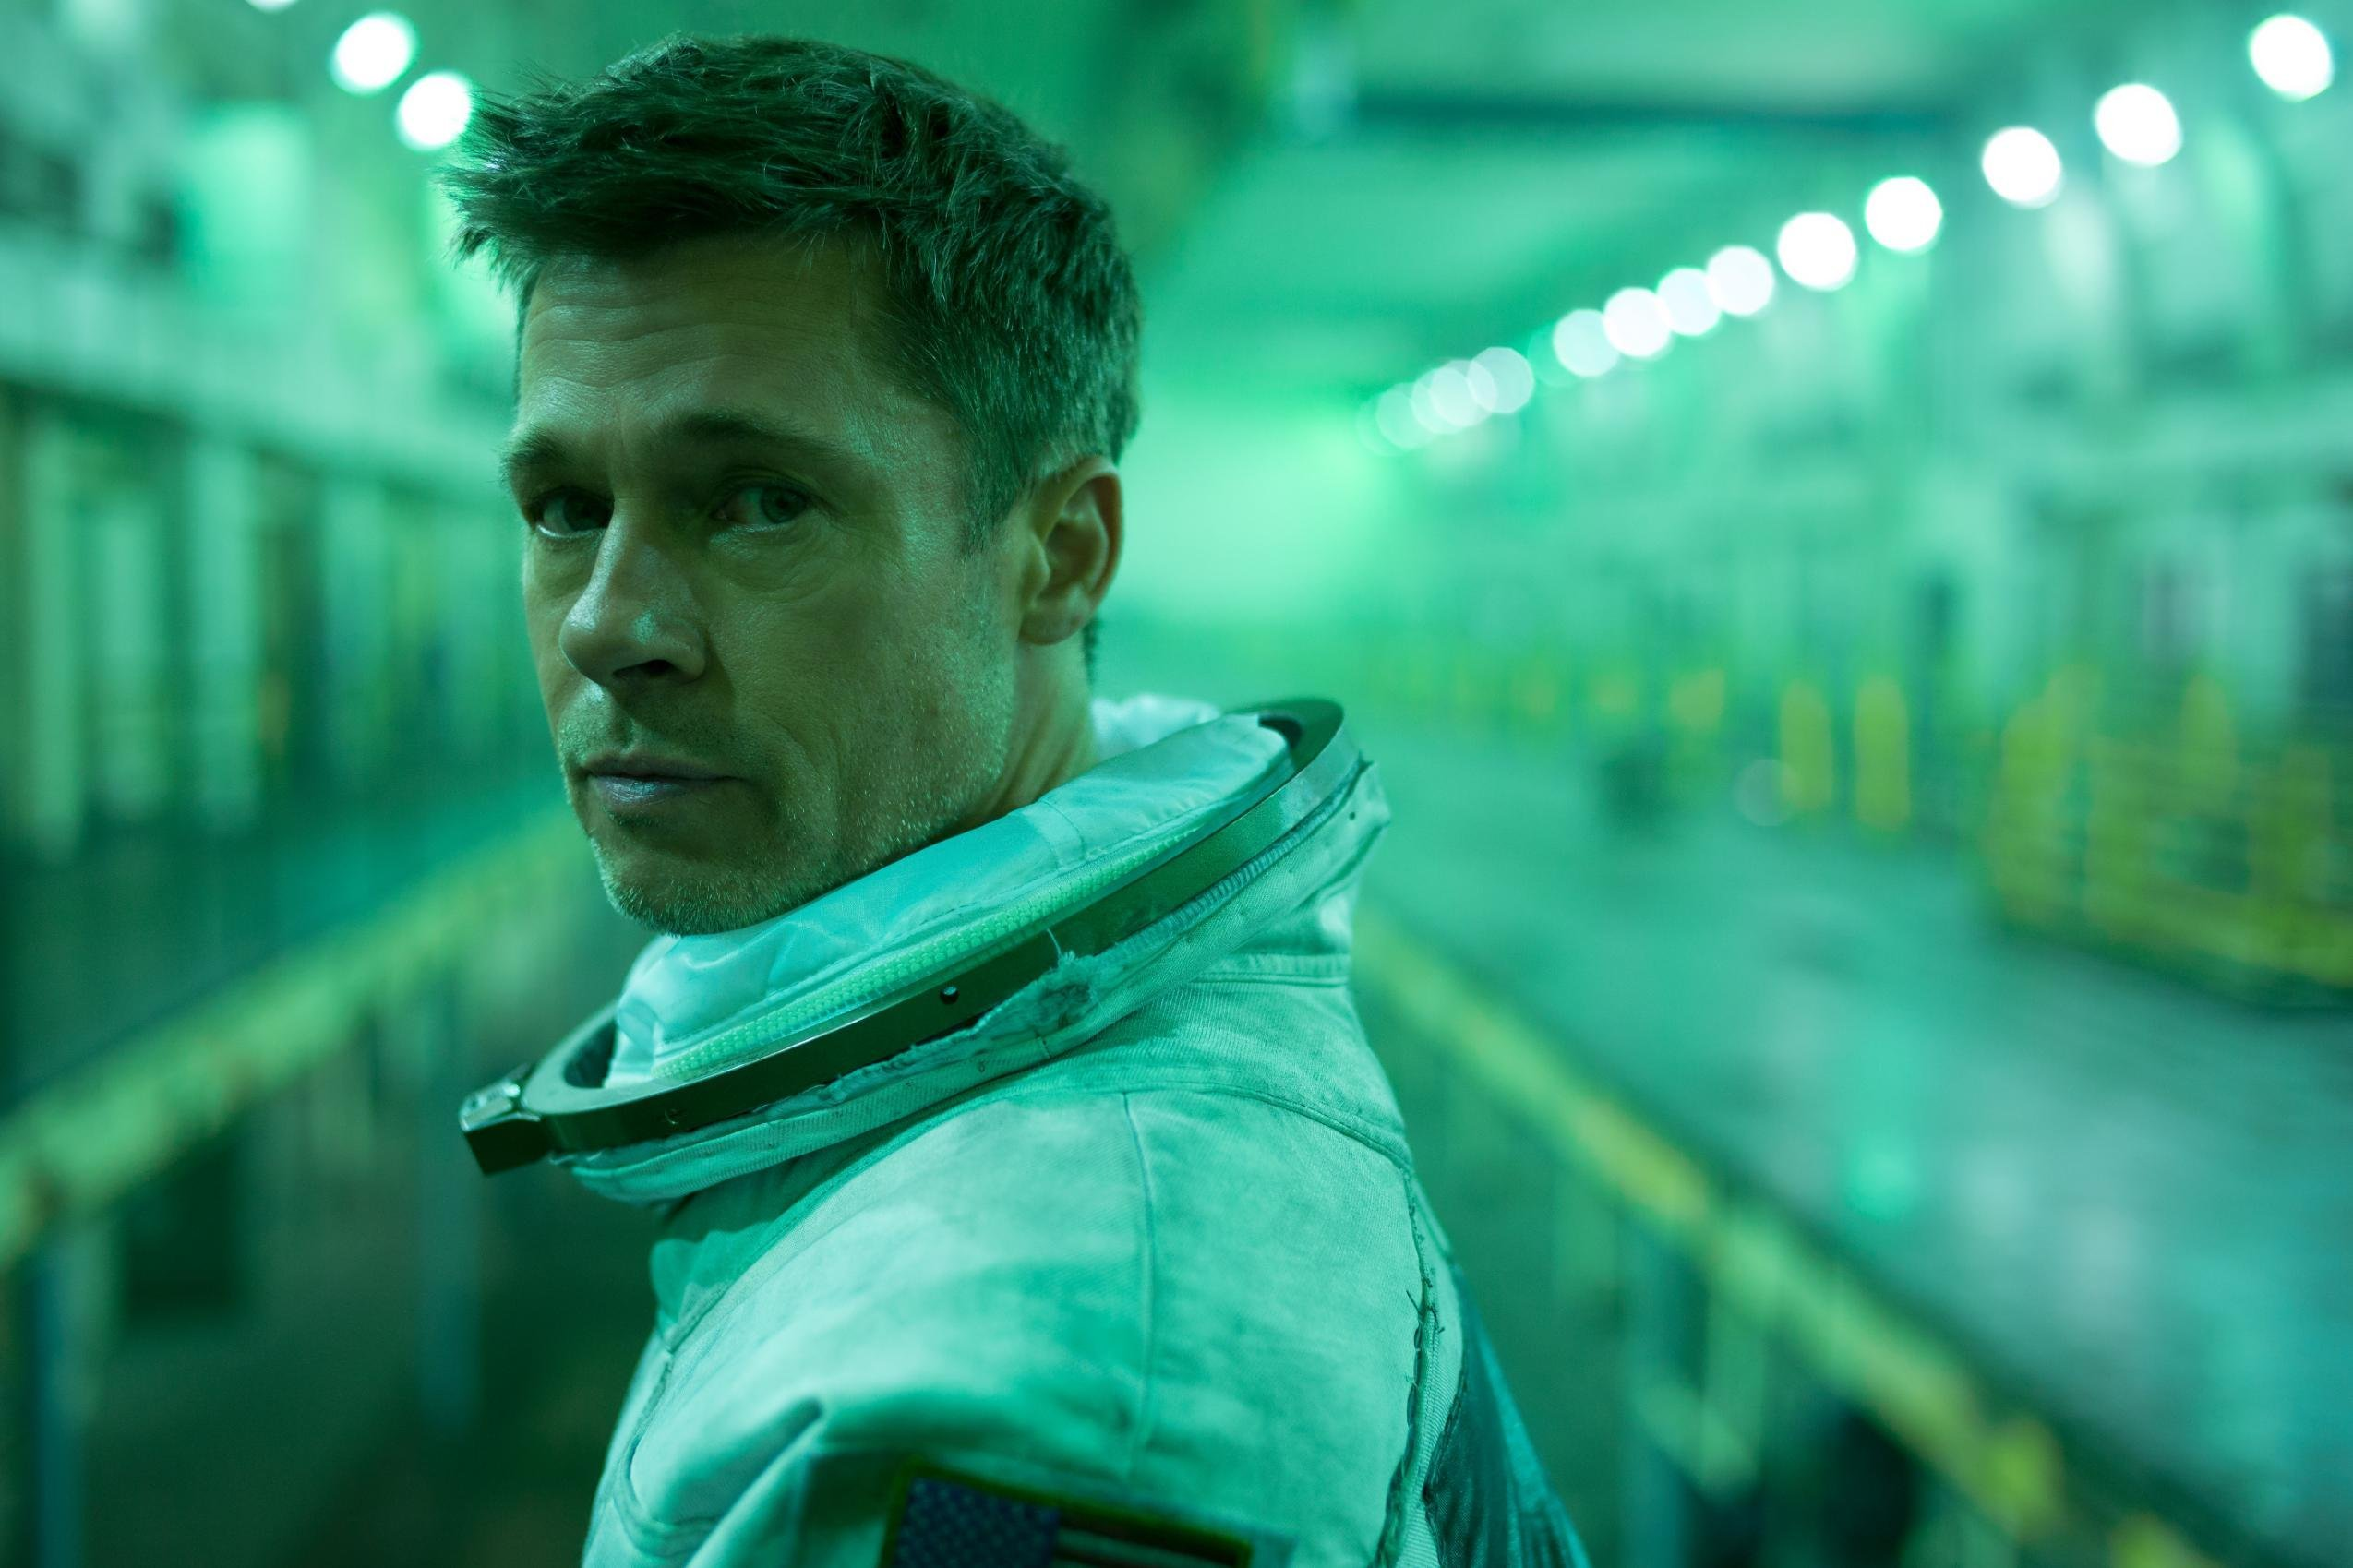 'Ad Astra' launches Brad Pitt into cerebral sci-fi realm